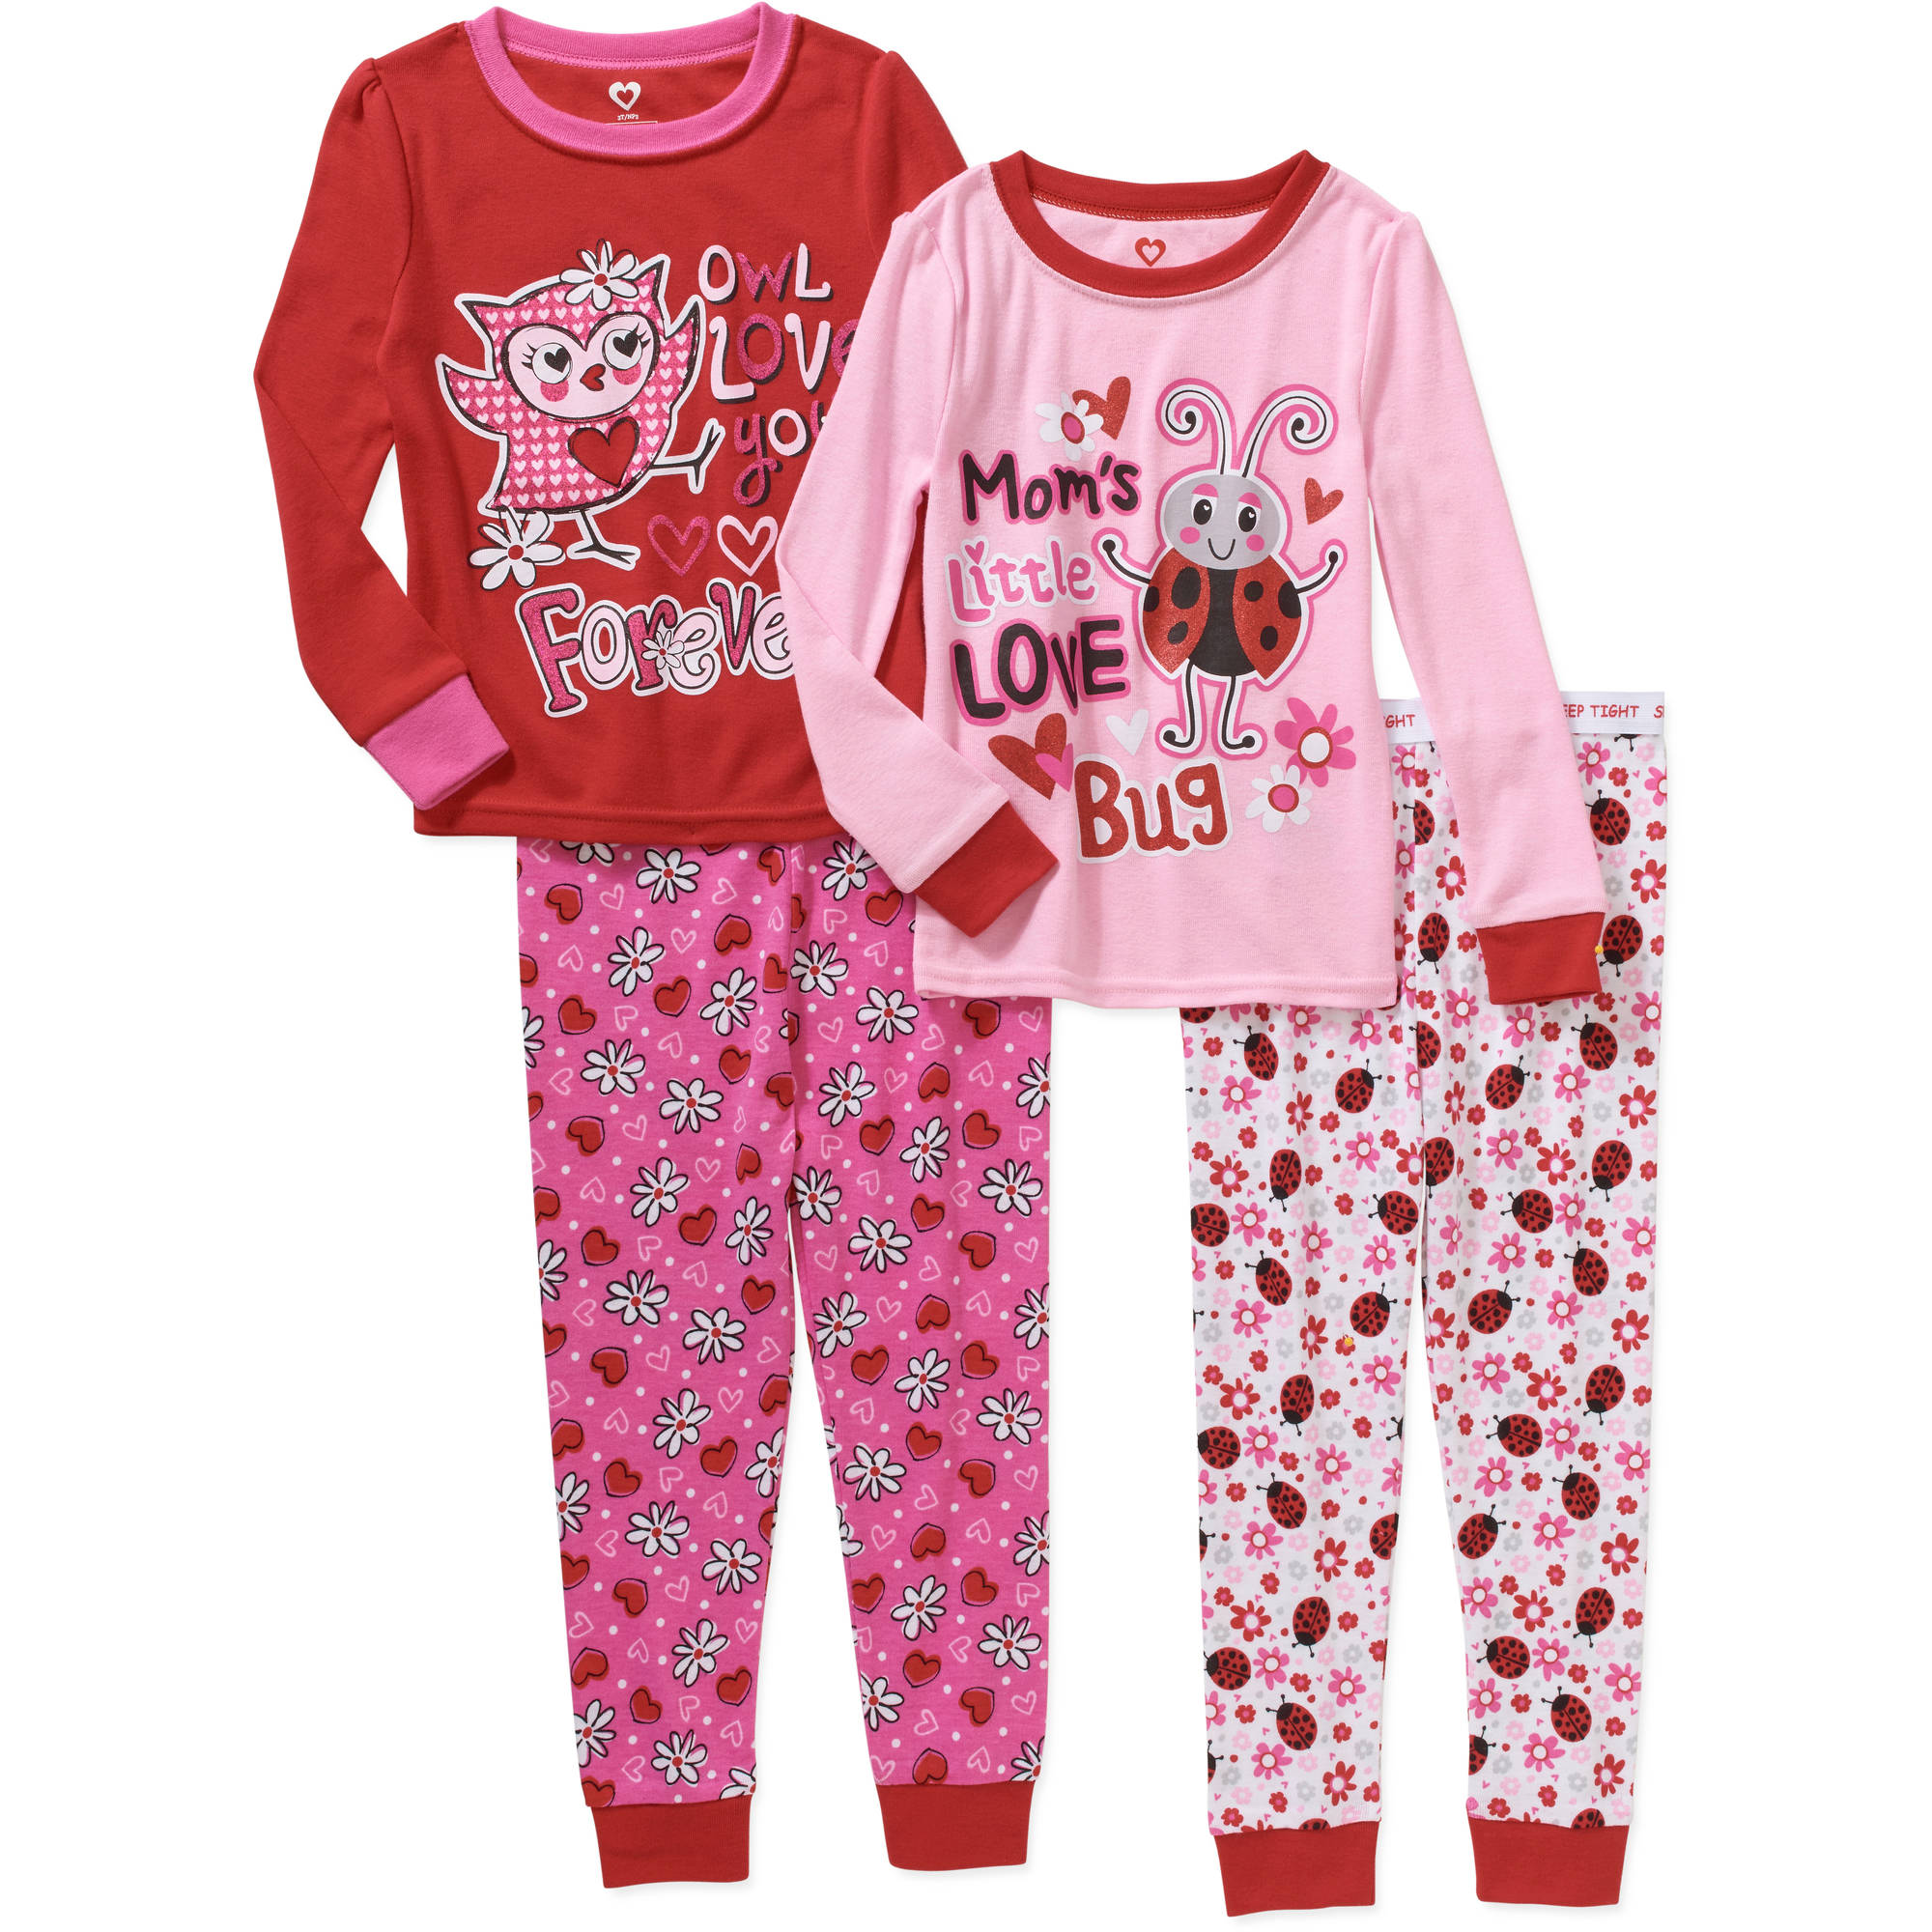 Valentineu0027s Day Toddler Girl Cotton Tight Fit Pajamas, 4 Piece Set